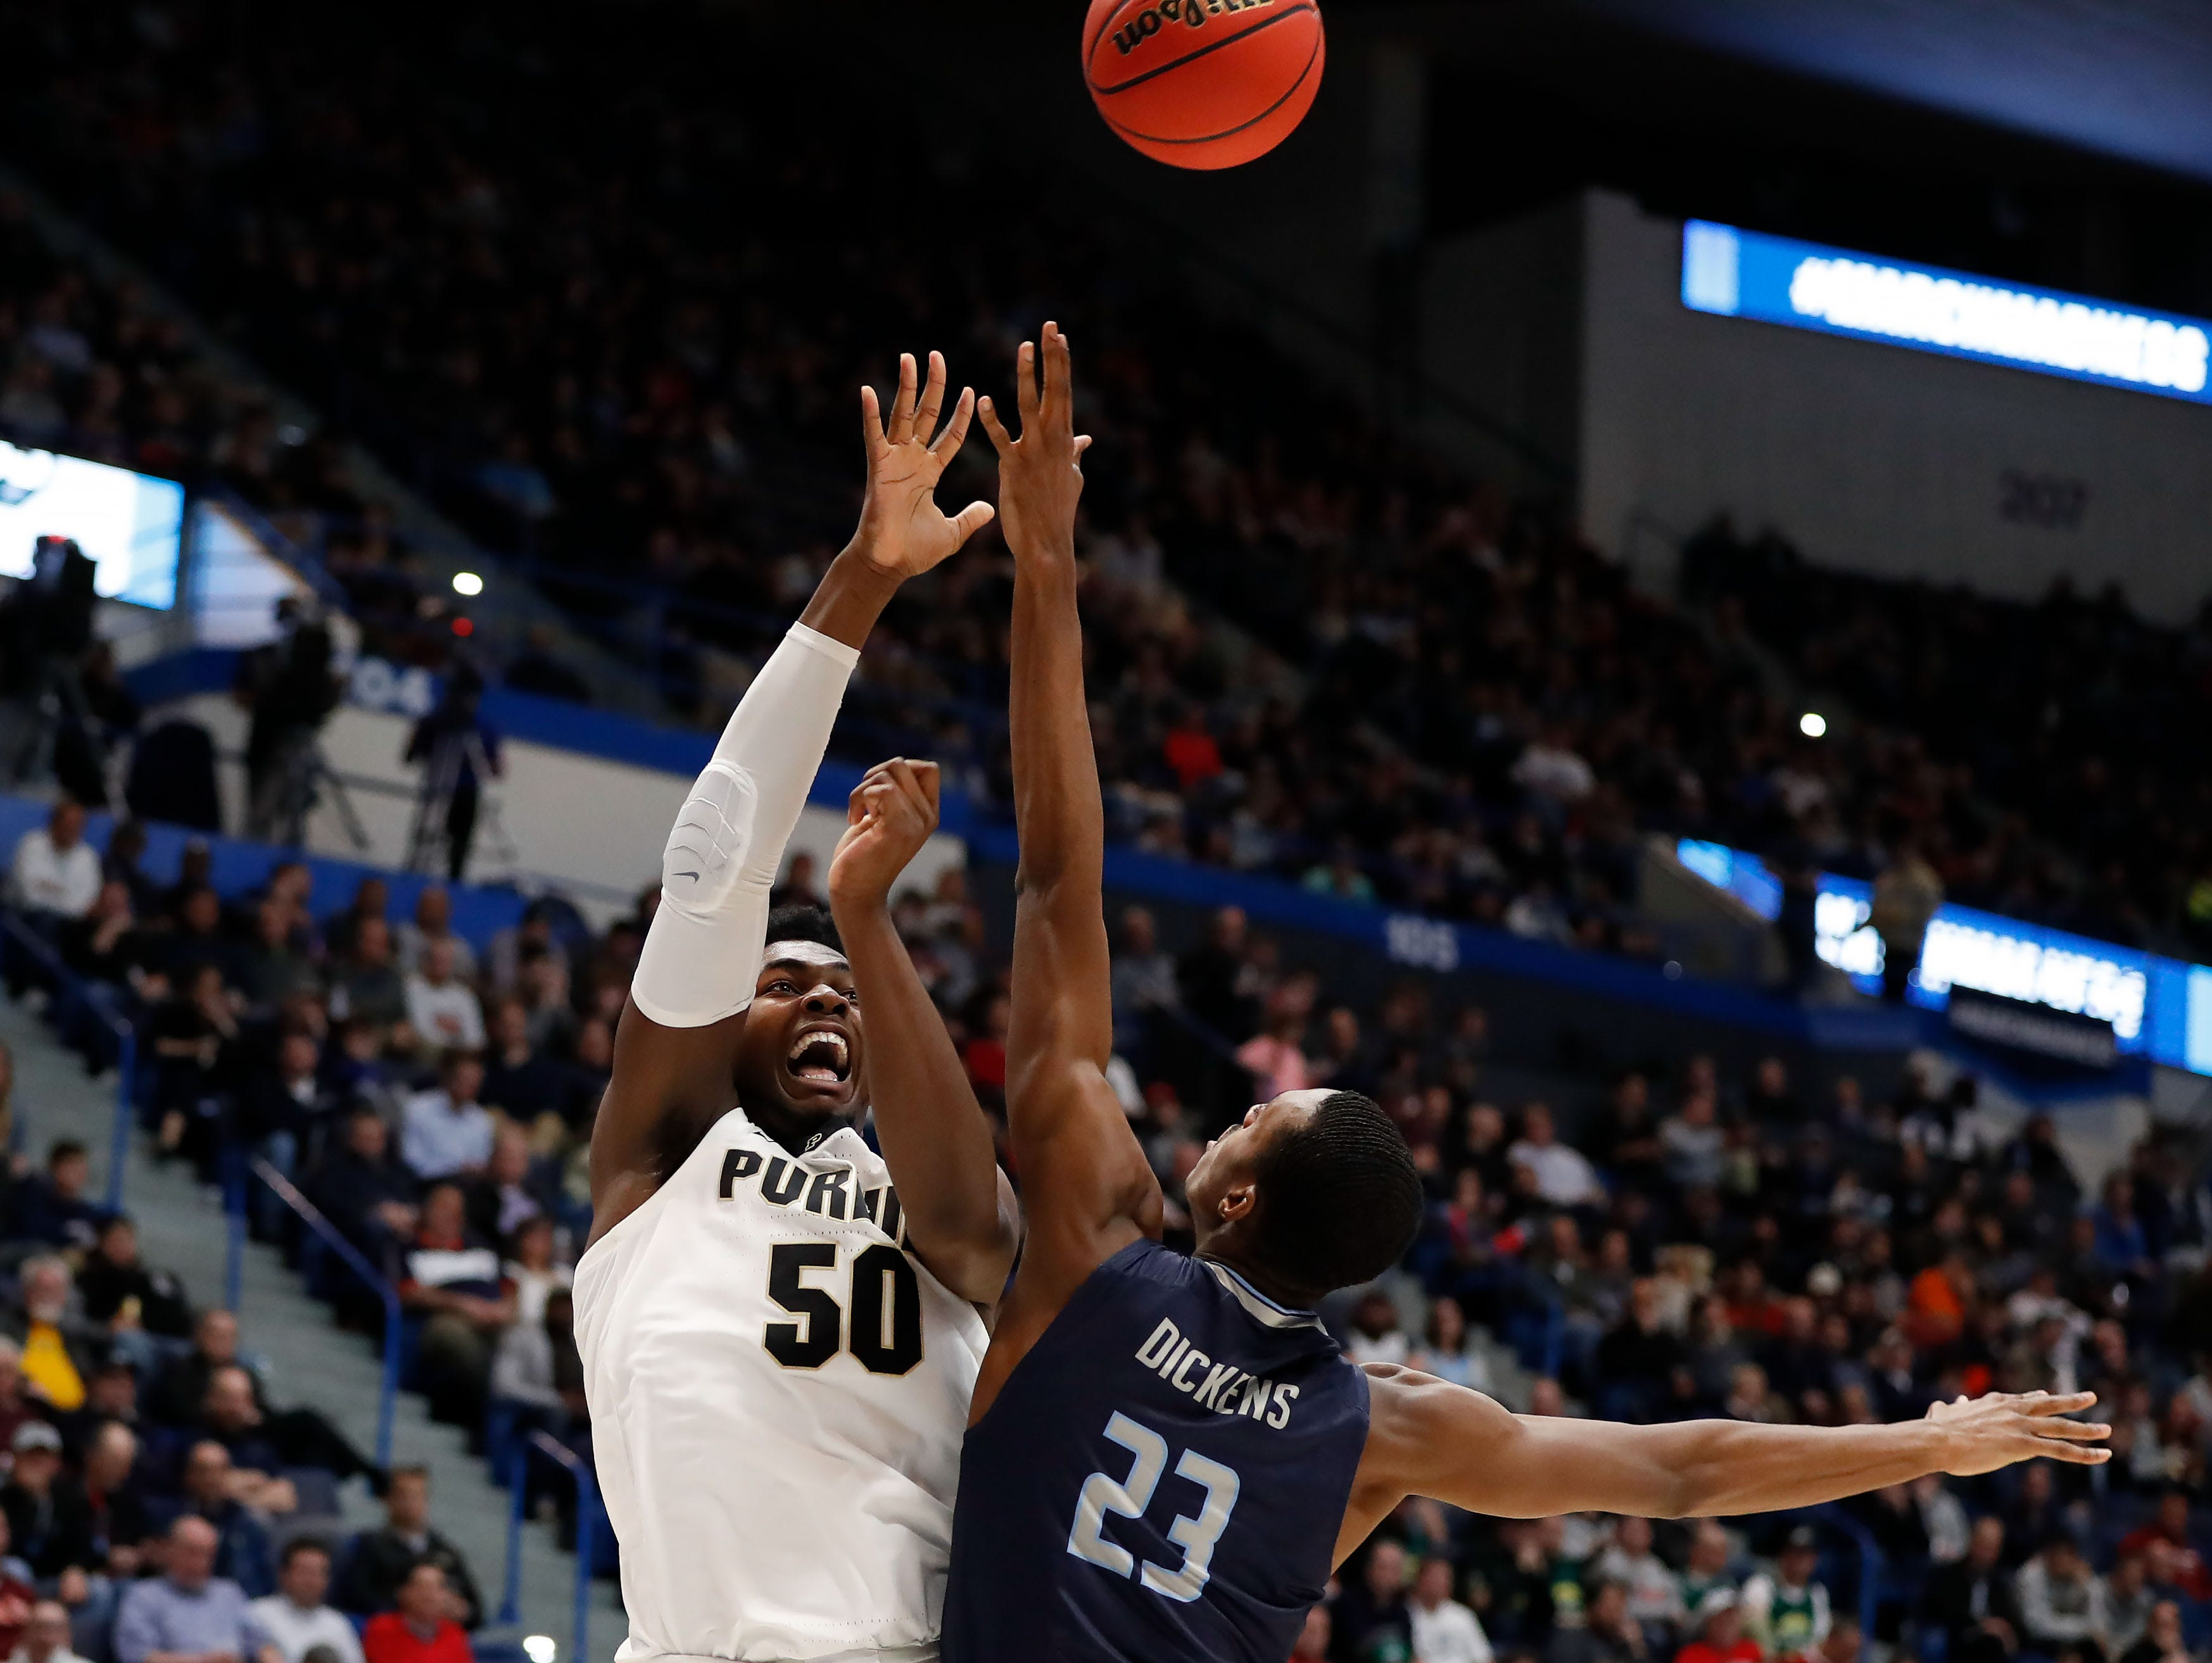 Mar 21, 2019; Hartford, CT, USA; Purdue Boilermakers forward Trevion Williams (50) attempts a shot past Old Dominion Monarchs forward Dajour Dickens (23) during the first half of a game in the first round of the 2019 NCAA Tournament at XL Center. Mandatory Credit: David Butler II-USA TODAY Sports